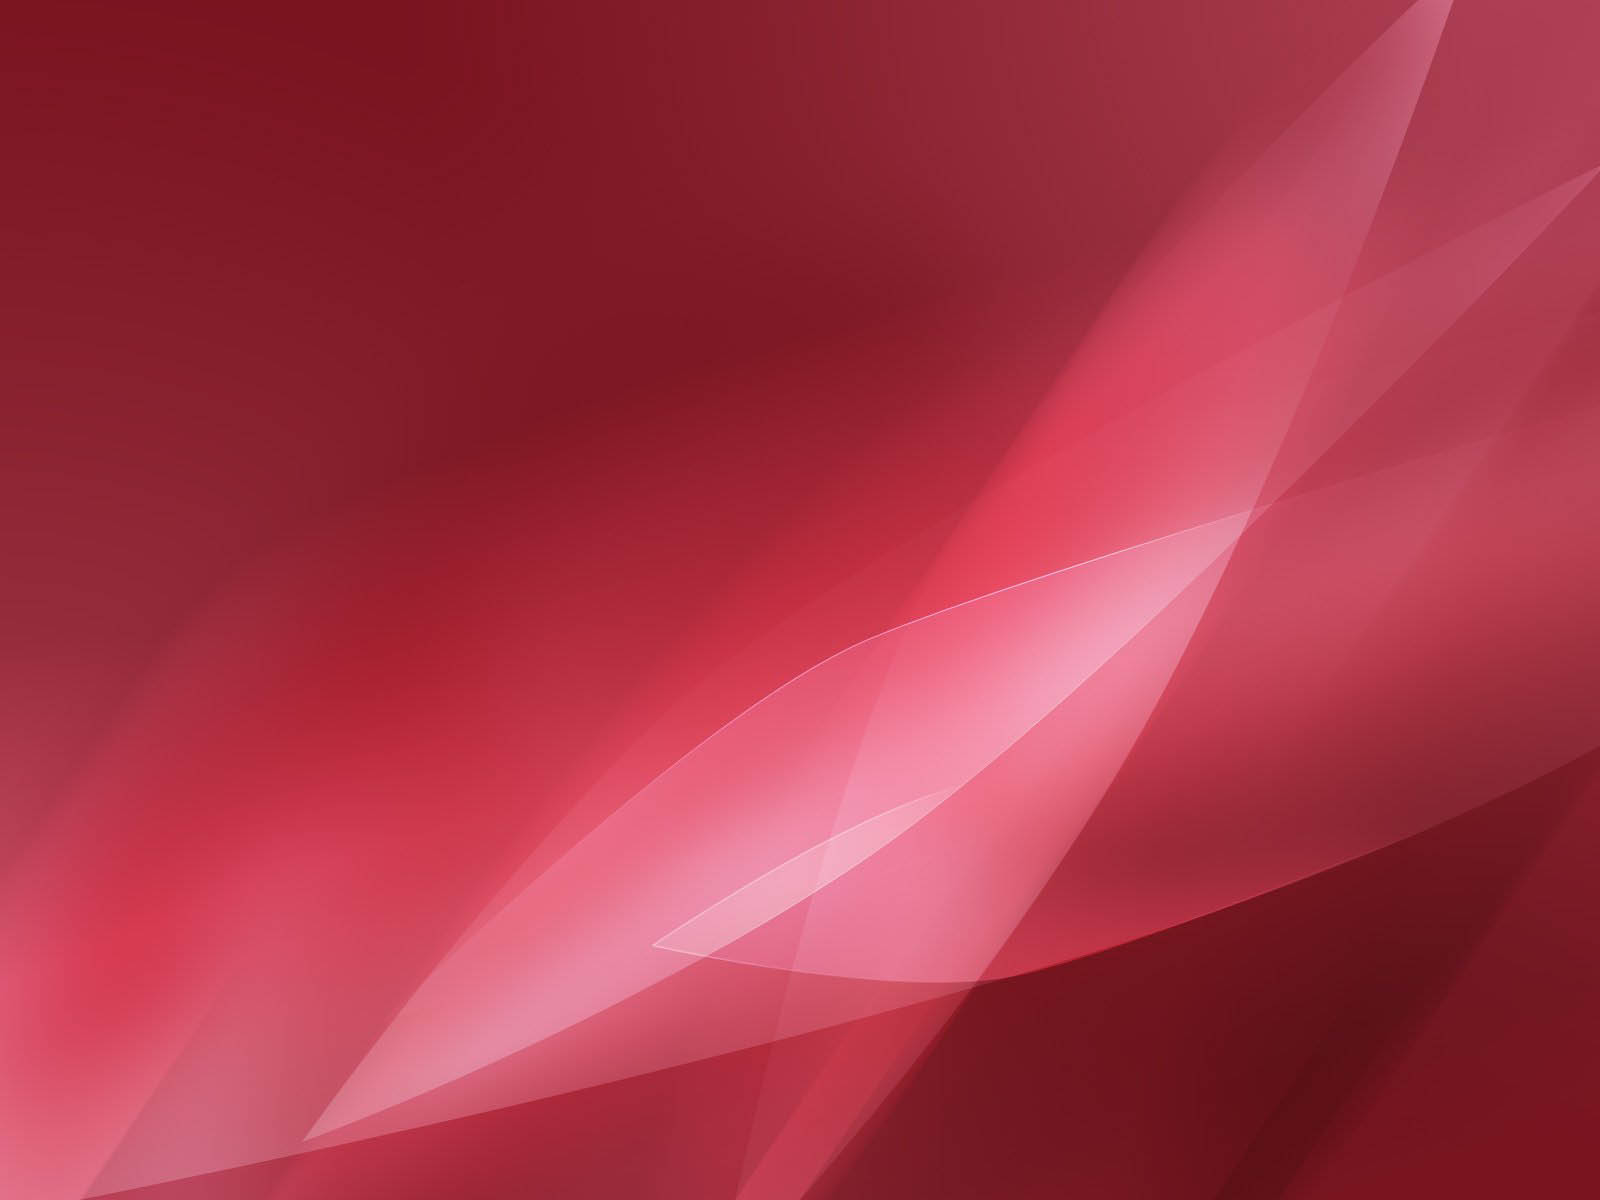 wallpaper Abstract Red Wallpapers 1600x1200